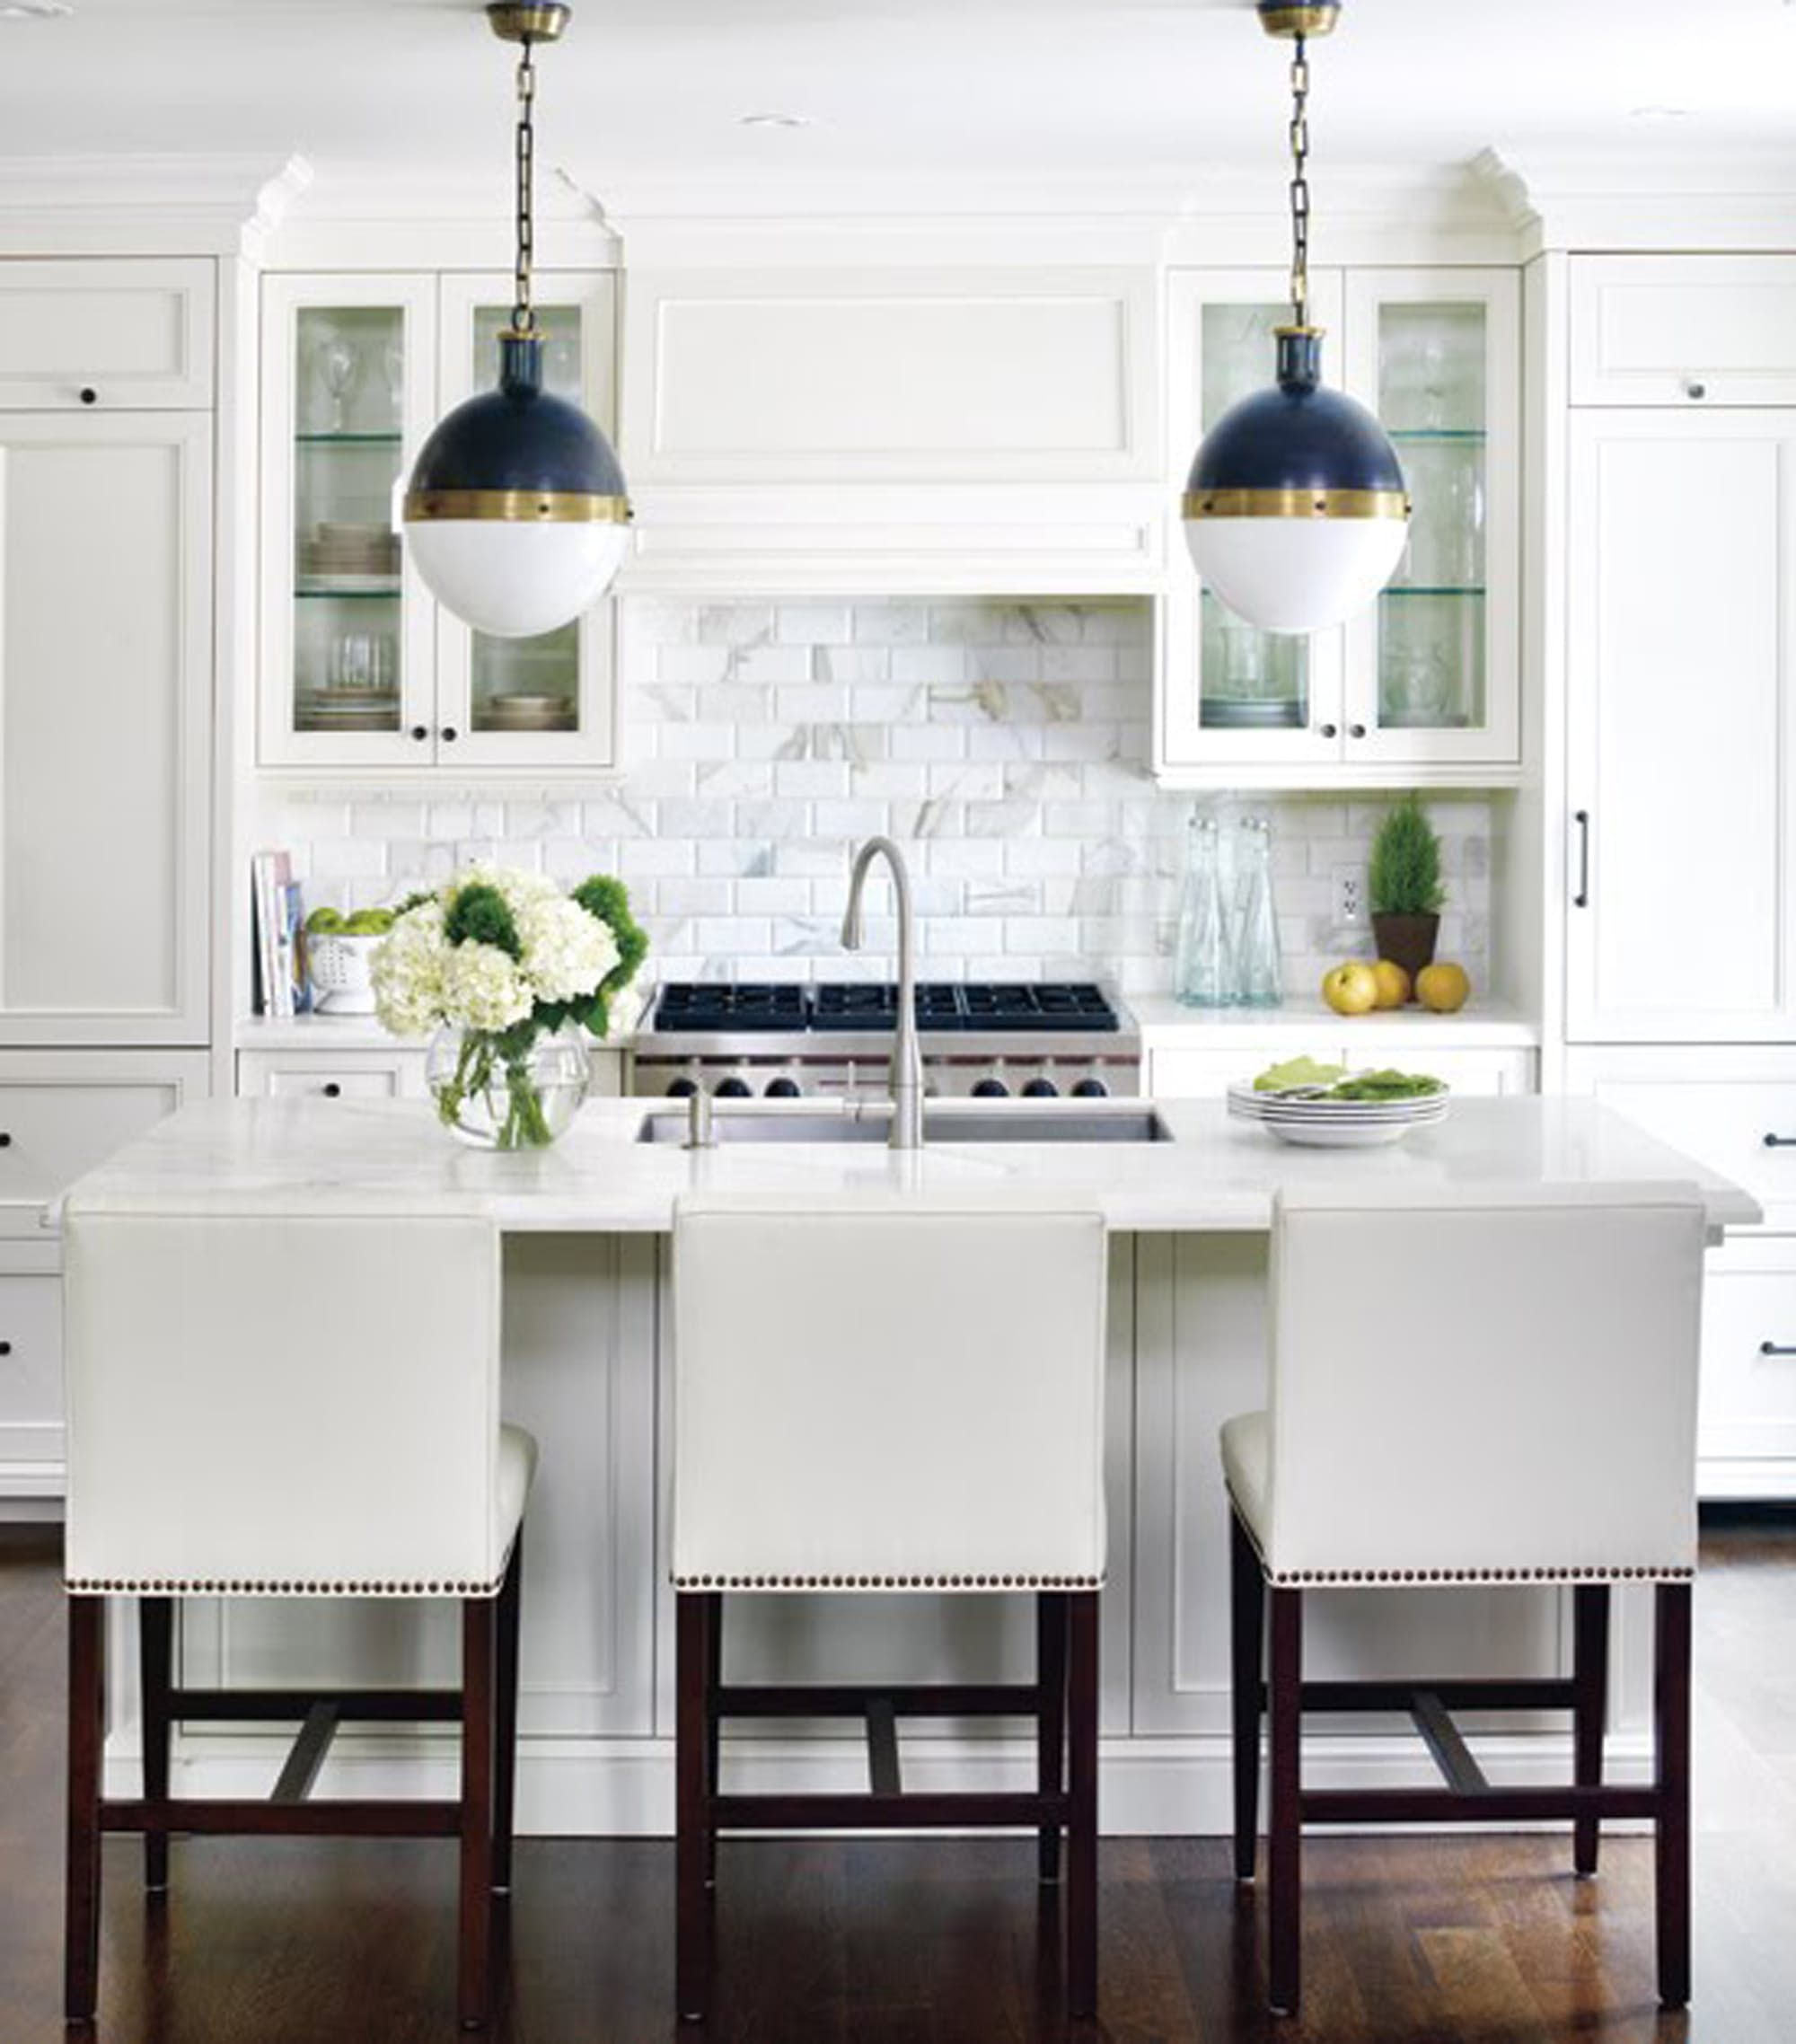 Subway Tiles Go Luxe in White Marble